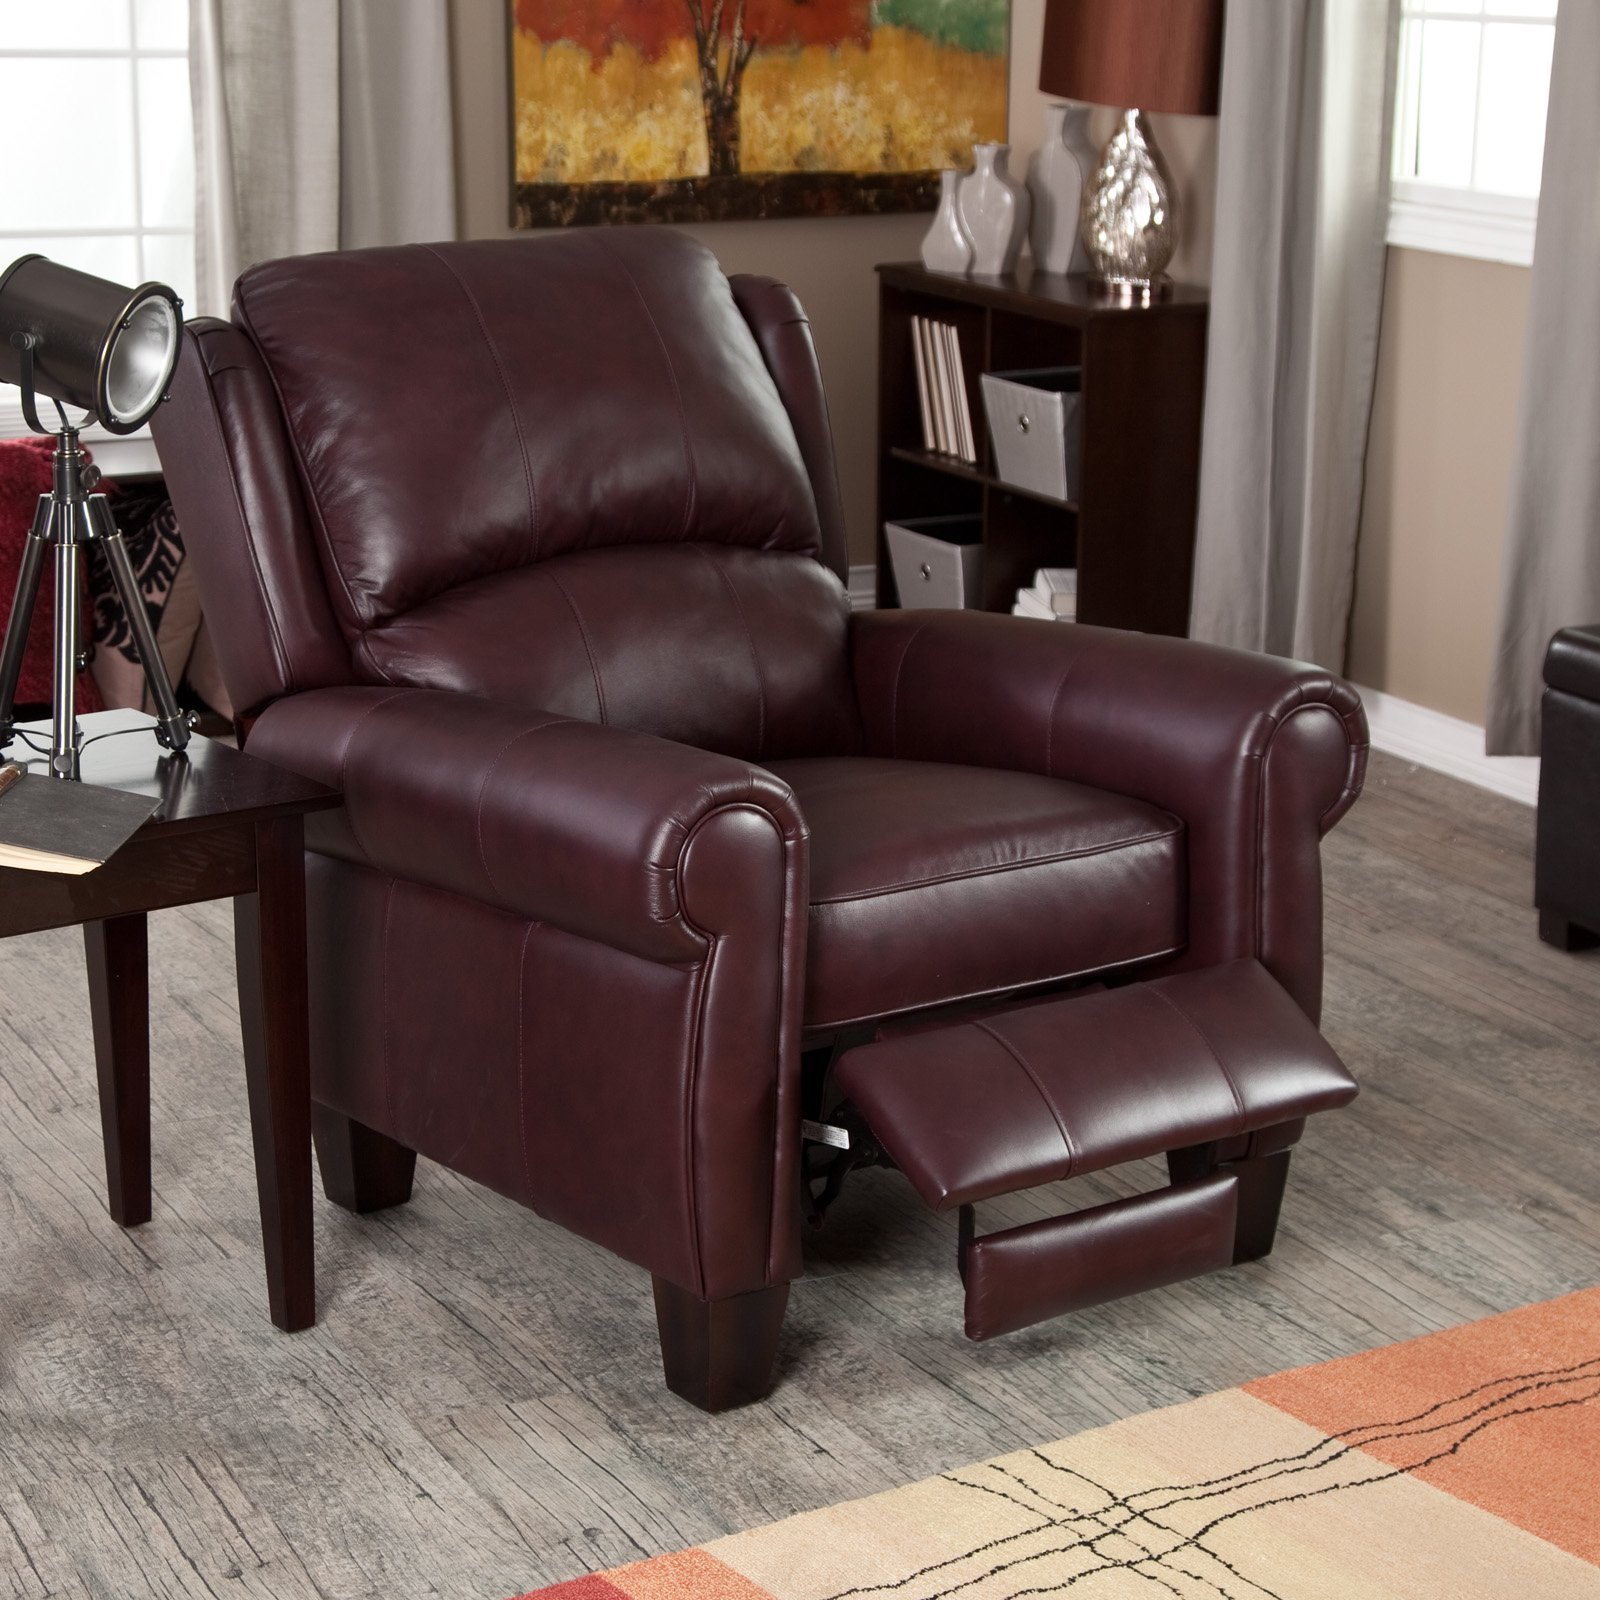 push back chair stool home depot leather recliner burgundy wingback